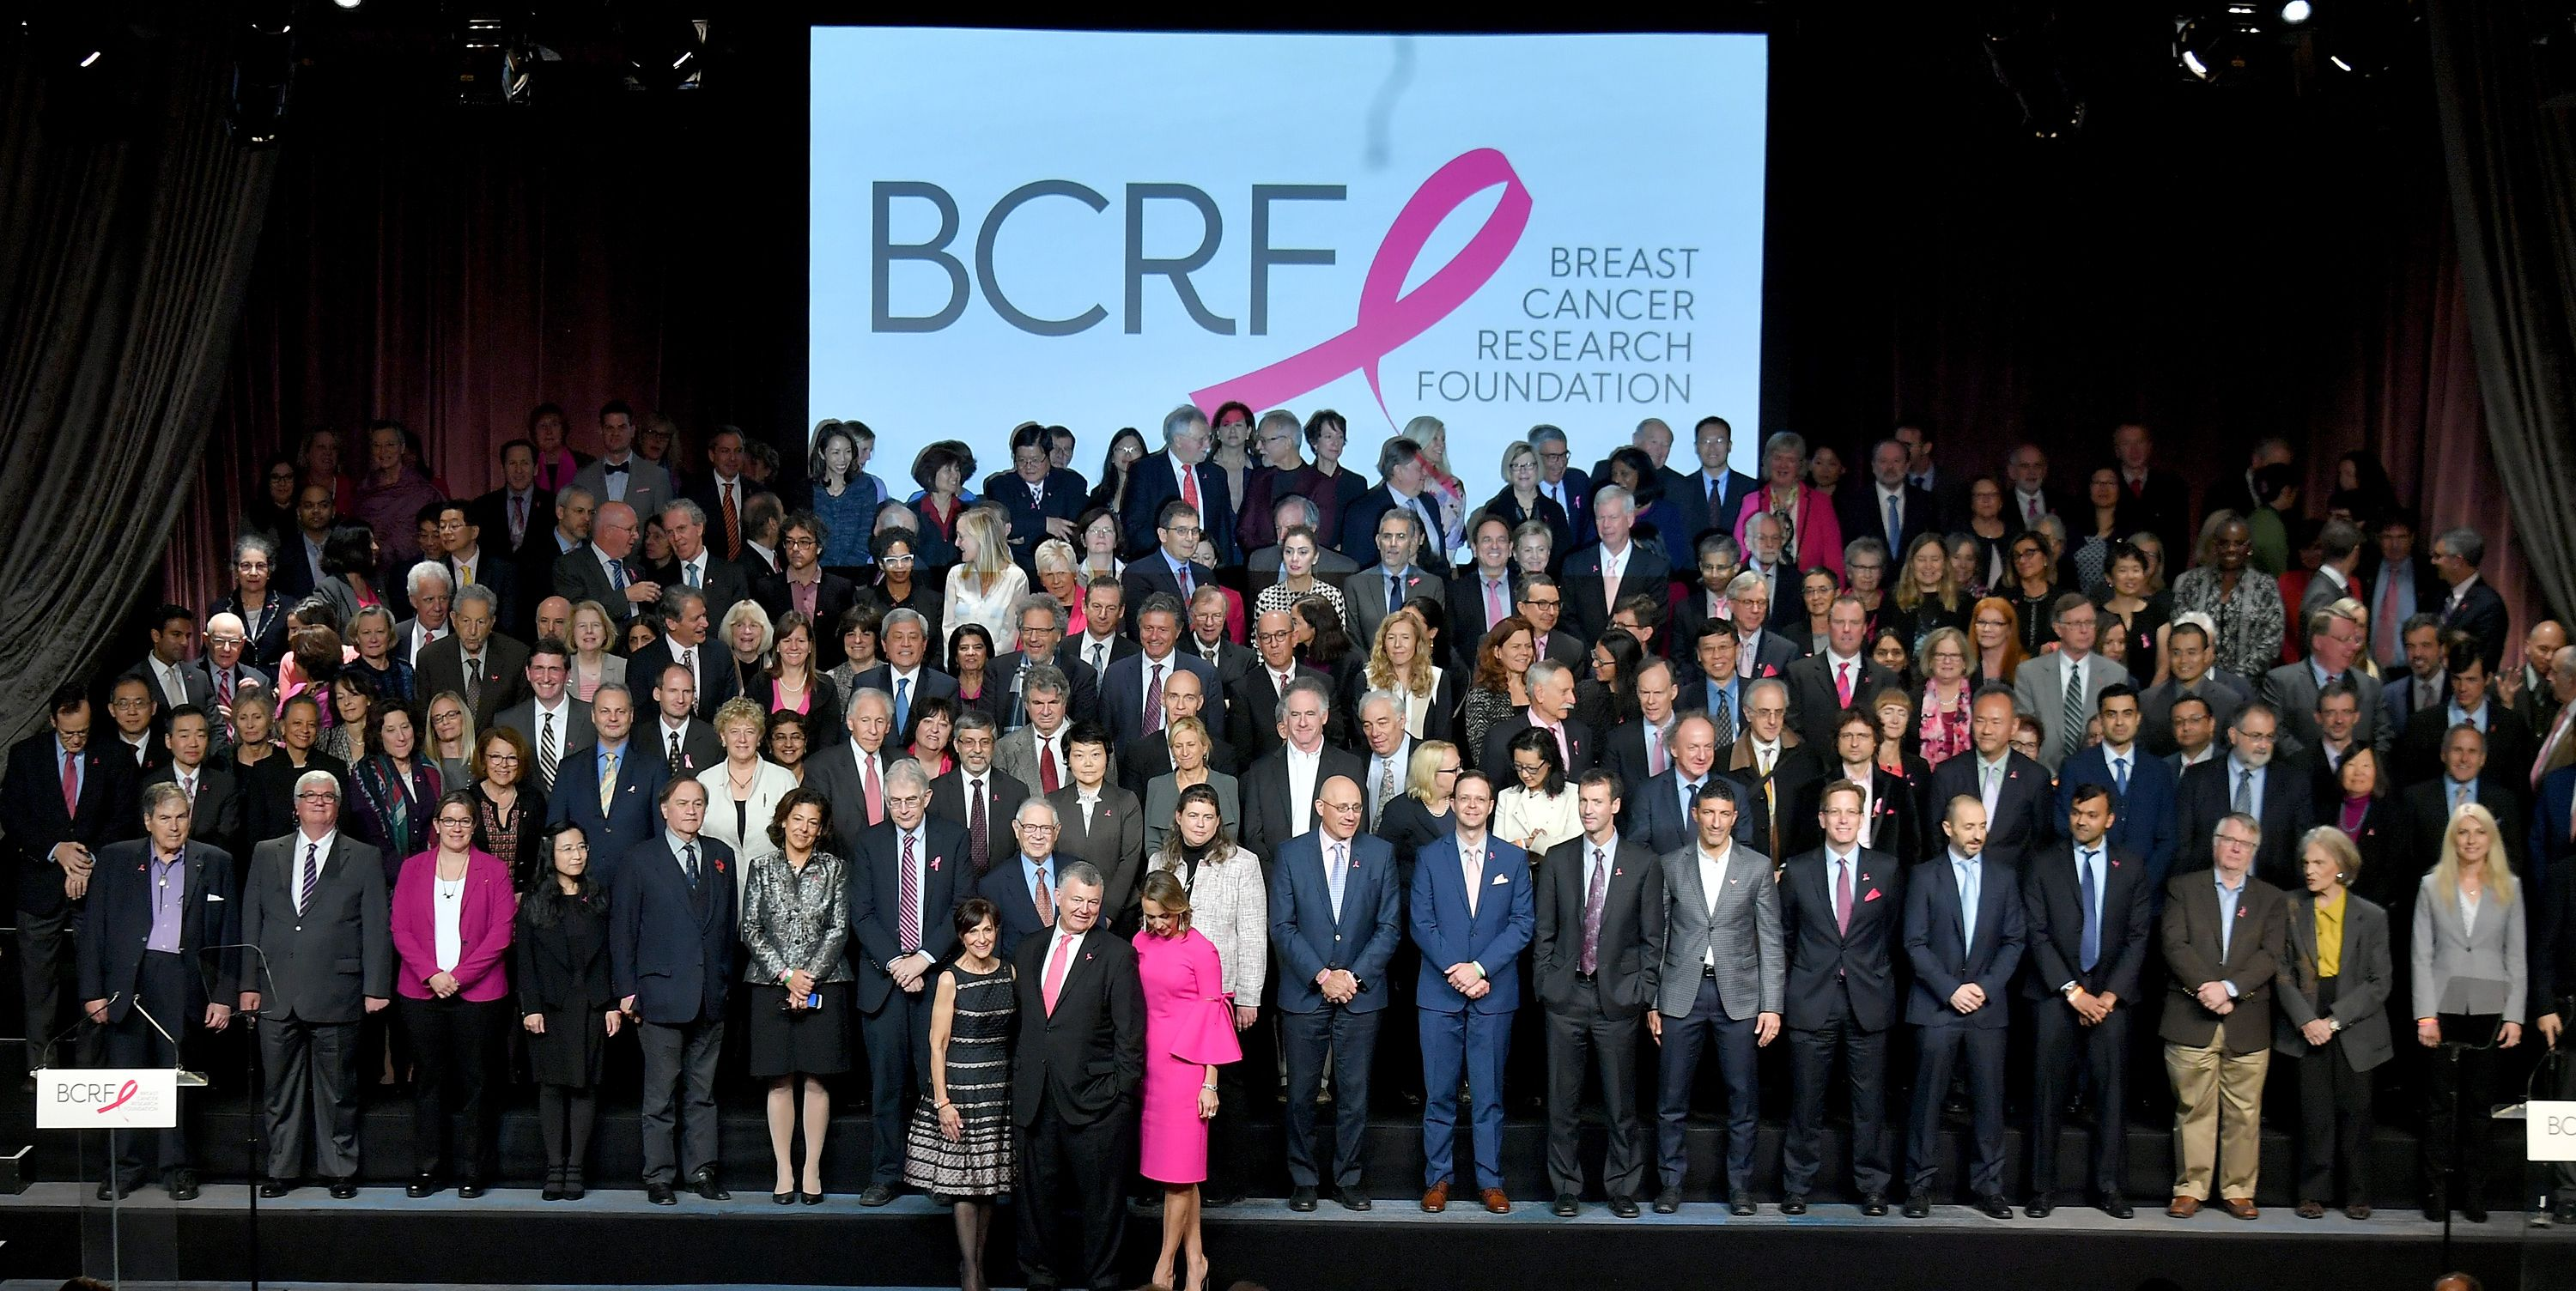 This was no average midday meal. More than 300 scientists from around the world were recognized on October 25 during the Breast Cancer Research Foundation's annual symposium and awards luncheon, held at the New York Hilton Midtown.